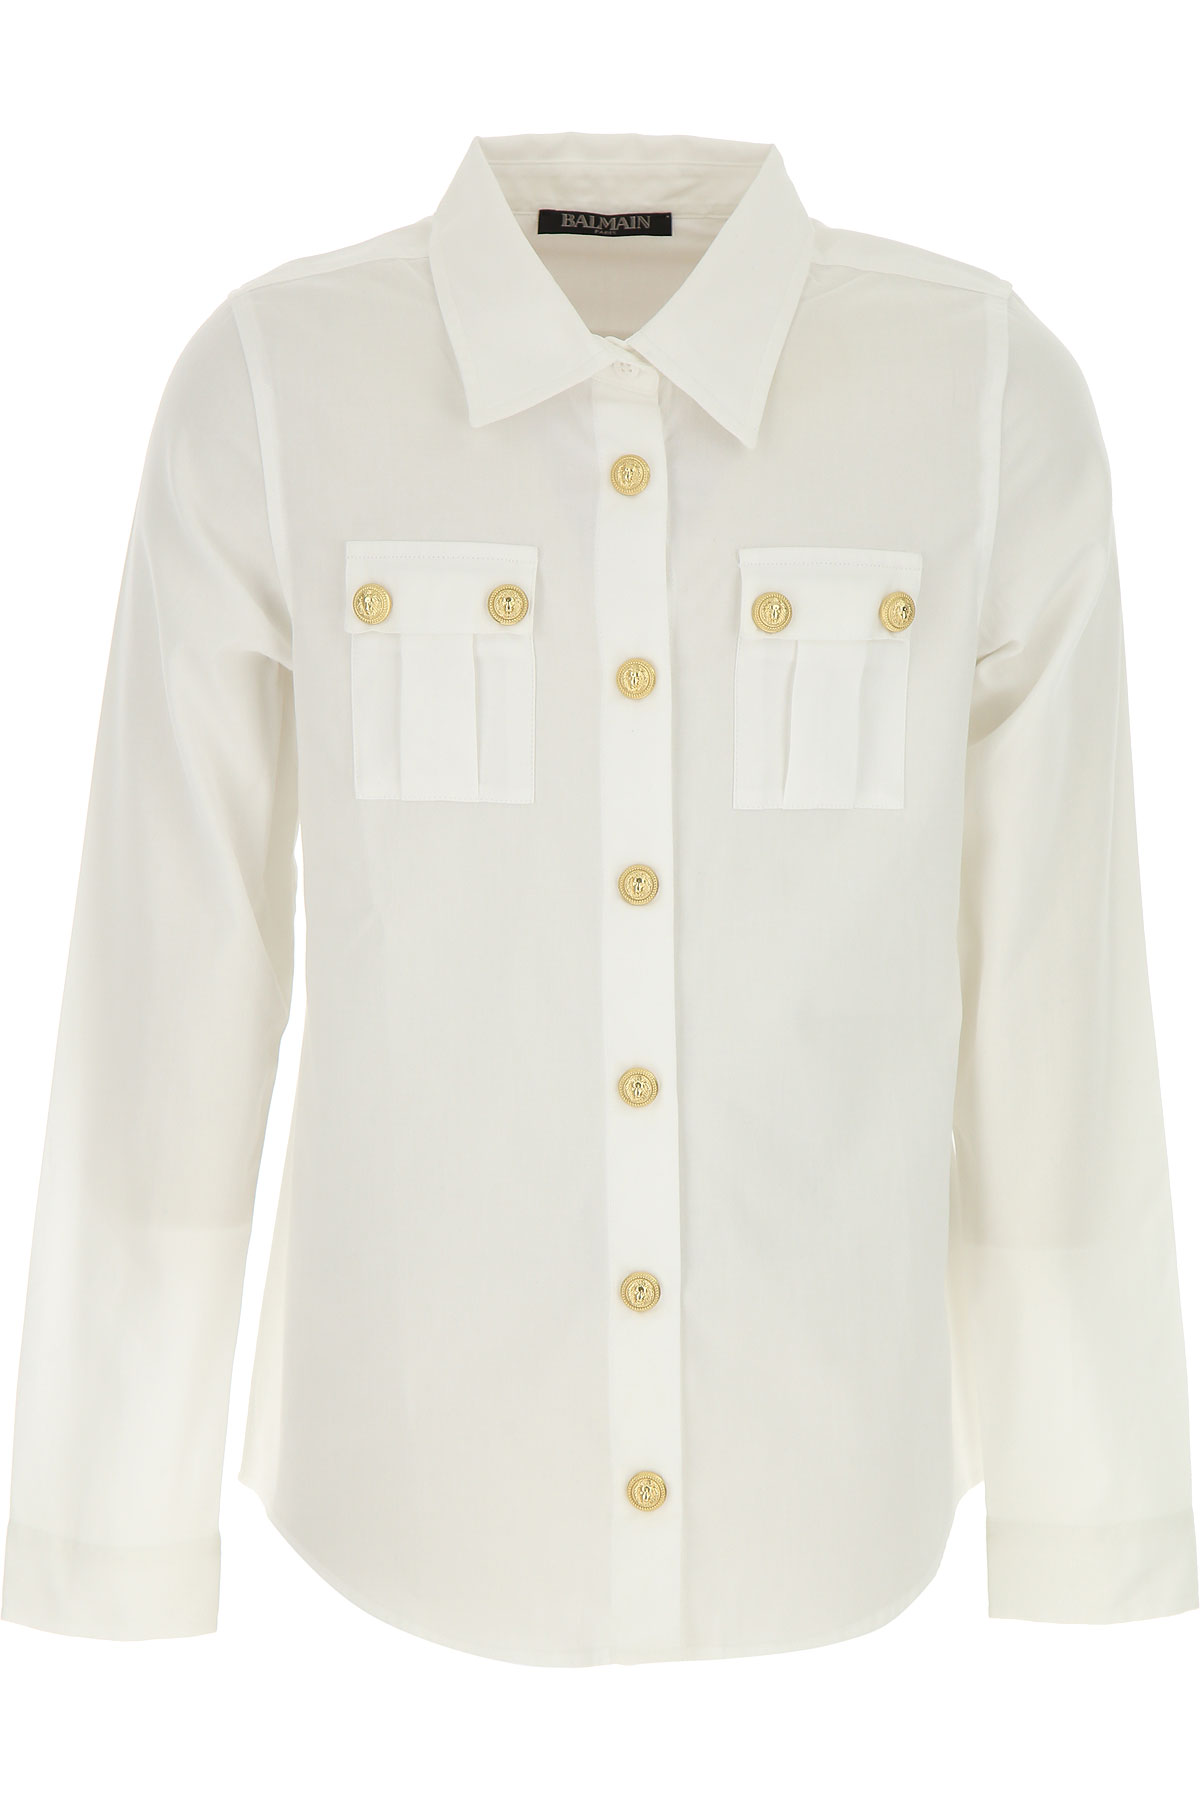 Image of Balmain Kids Shirts for Boys, White, Cotton, 2017, 10Y 14Y 8Y